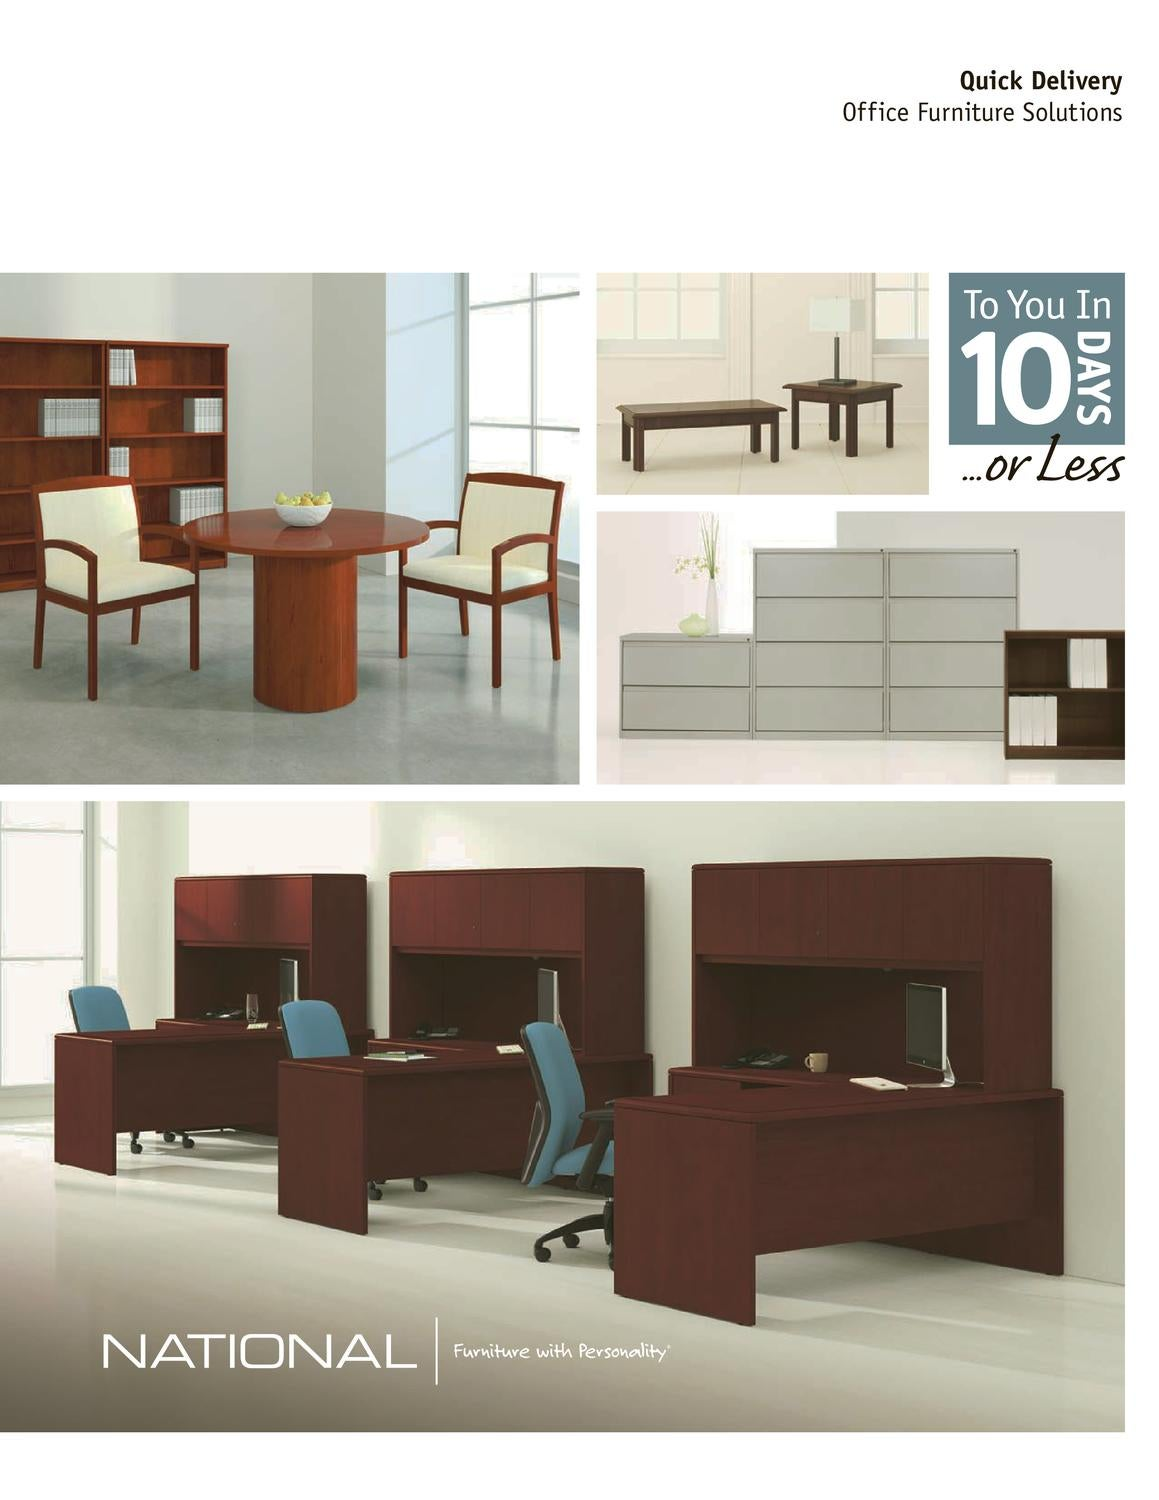 National office furniture quick delivery catalog by rmrm for Furniture quick delivery